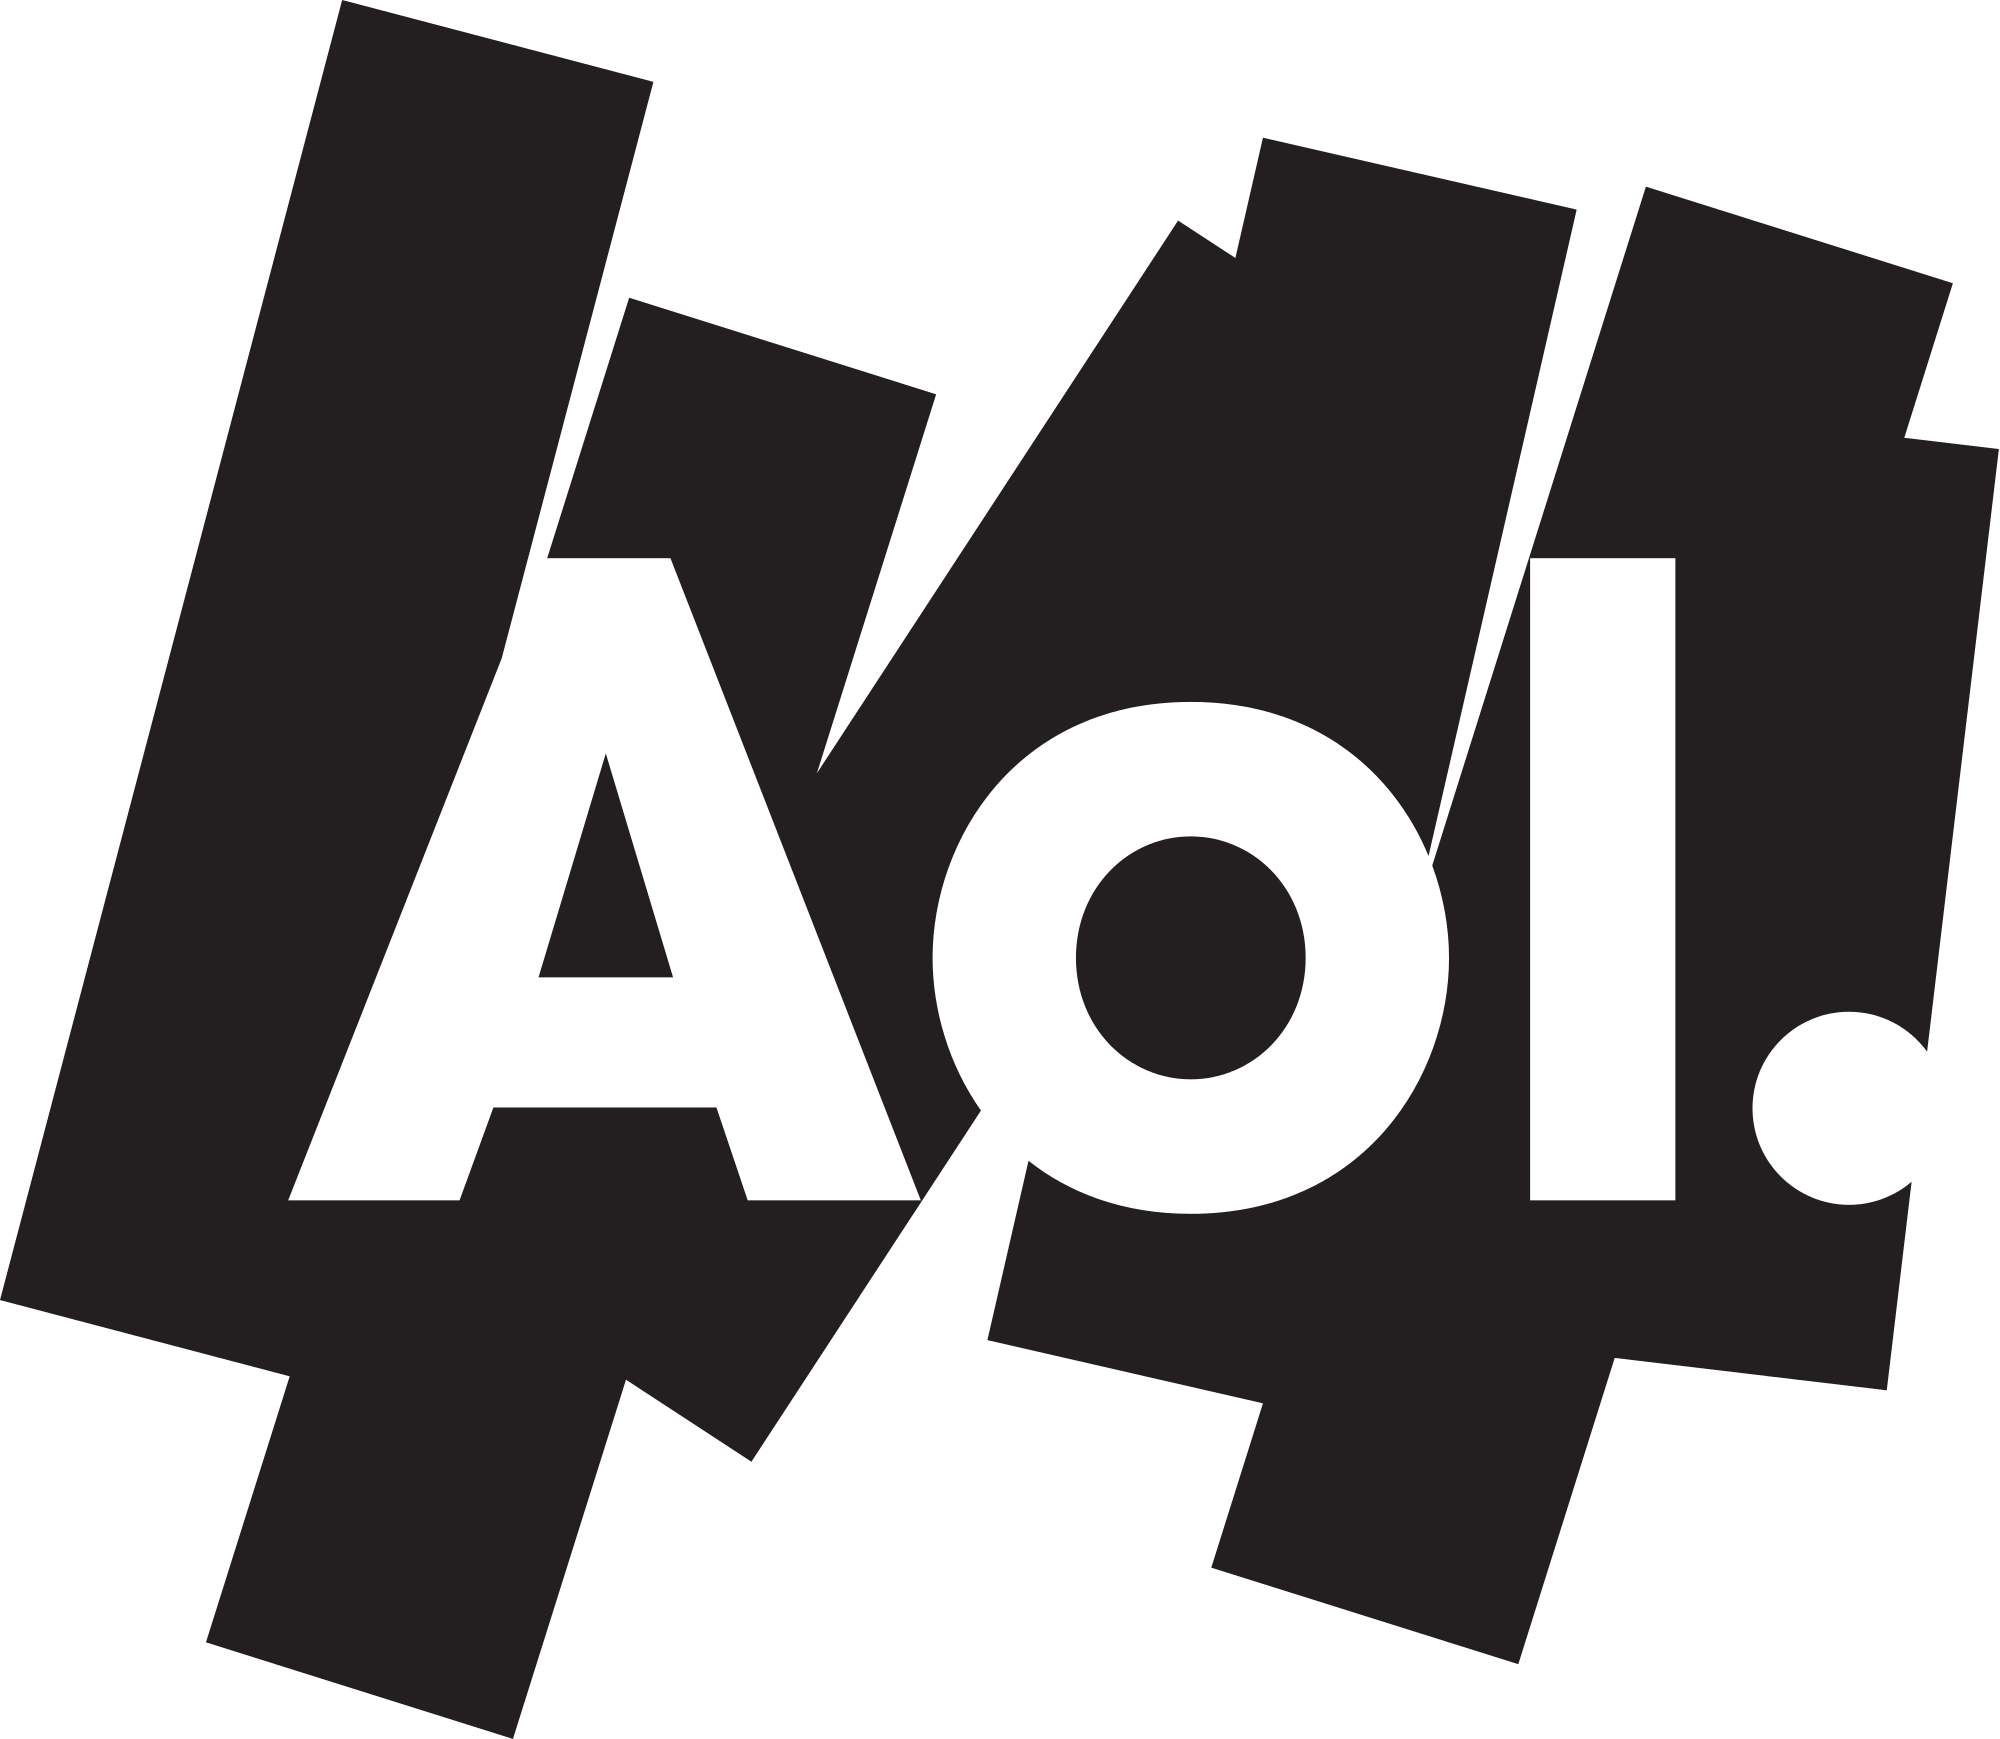 Transparent one logo aol. Wikipedia the eraser in